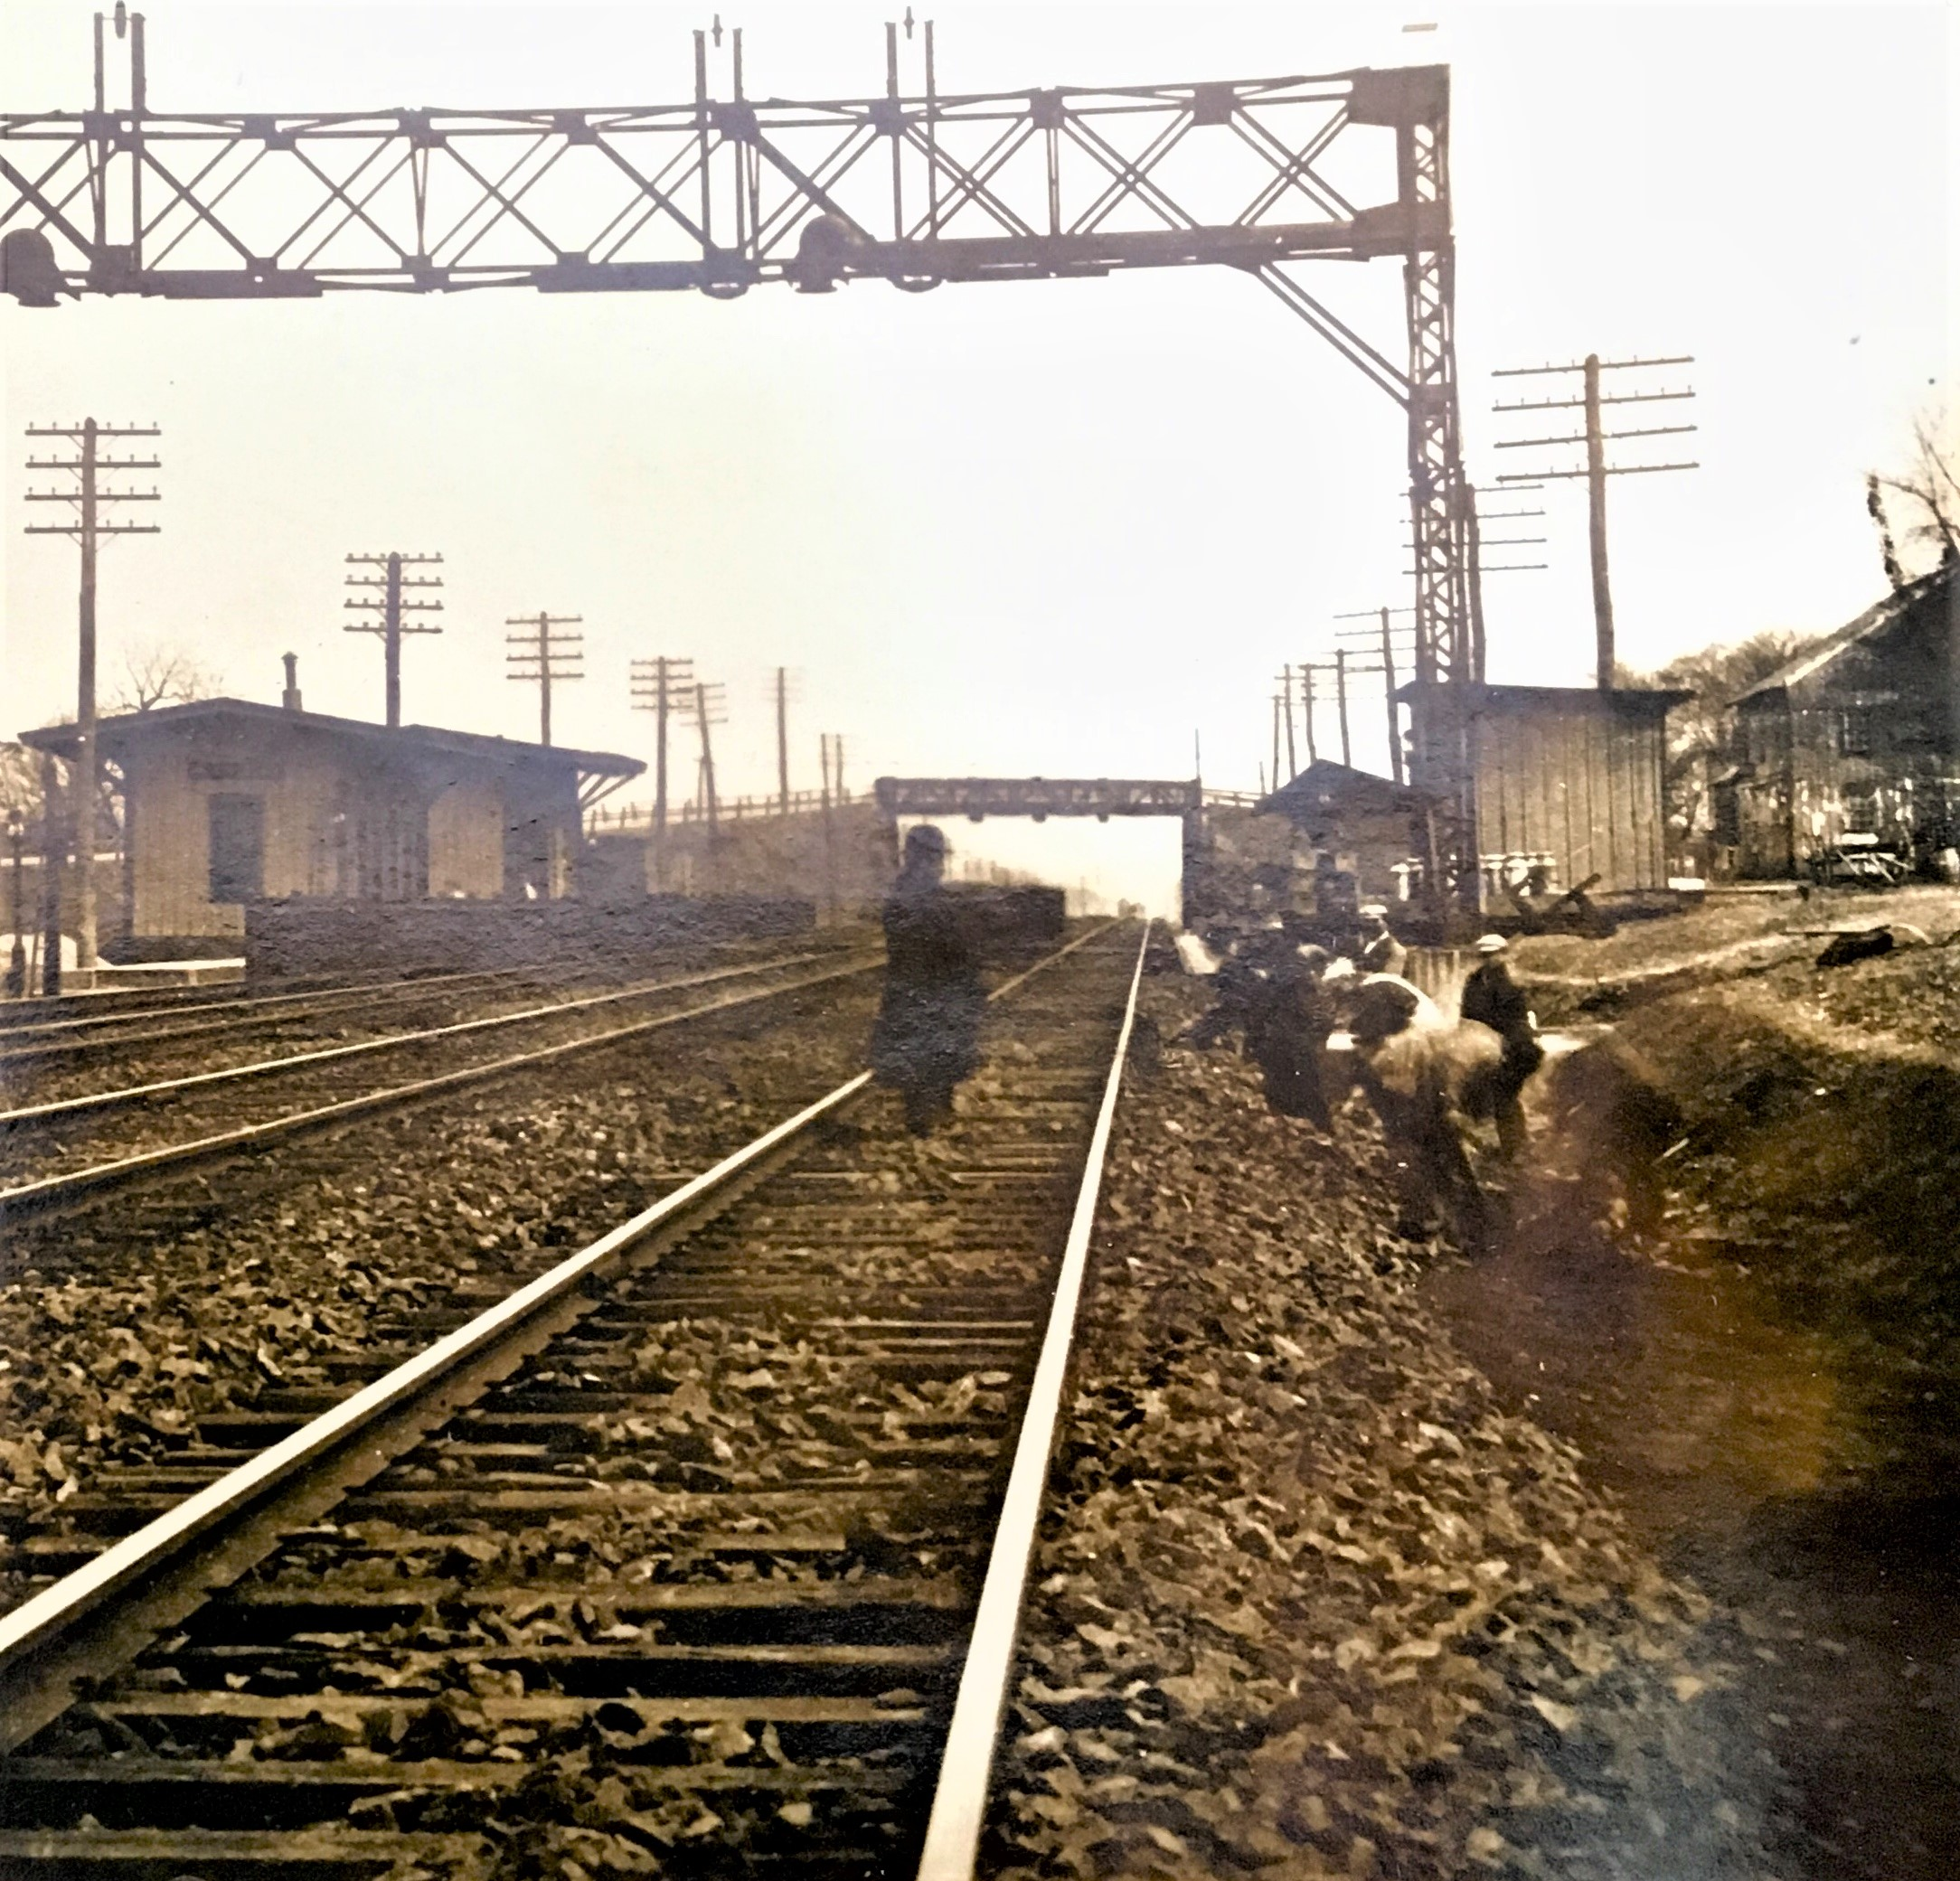 Sepia photograph of Plainsboro Station in 1915. In the center is a man standing on the railroad tracks, facing right. To the right of the tracks are several men working in a trench. Behind the men and on the left side of multiple tracks are wooden buildings. In the background is a bridge crossing over the tracks.